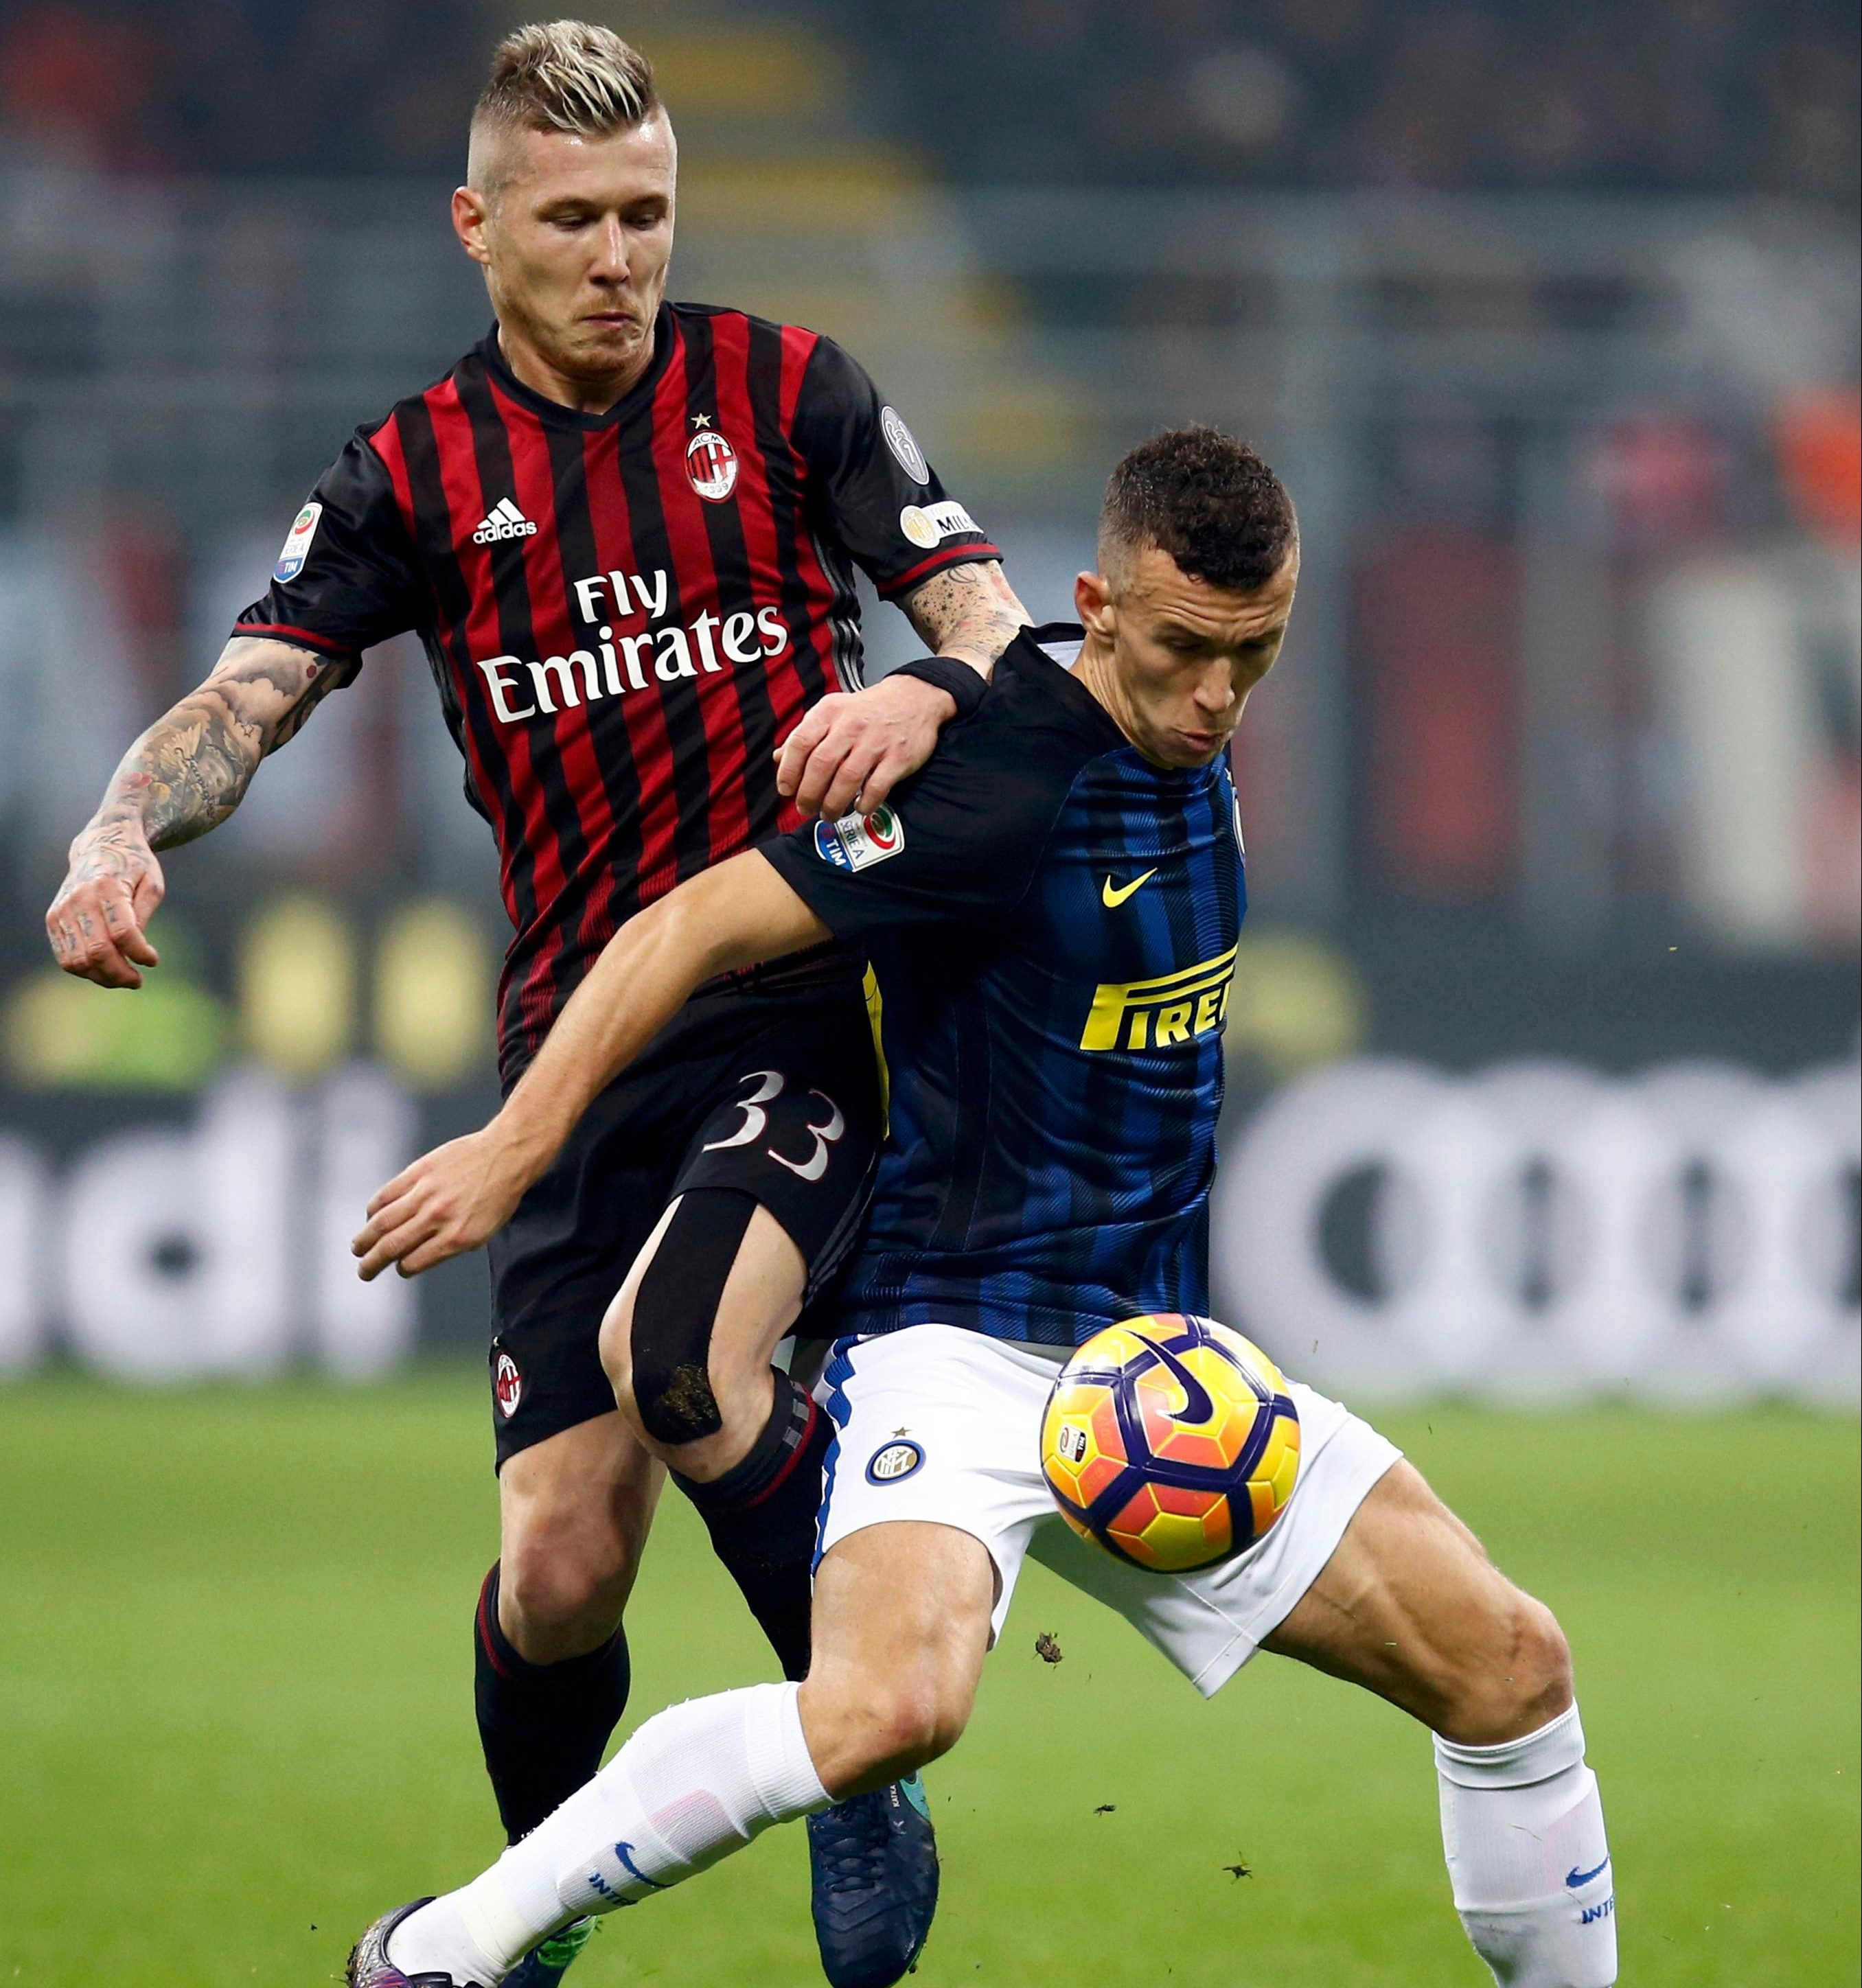 Perisic 'asks to leave' Inter – Marotta